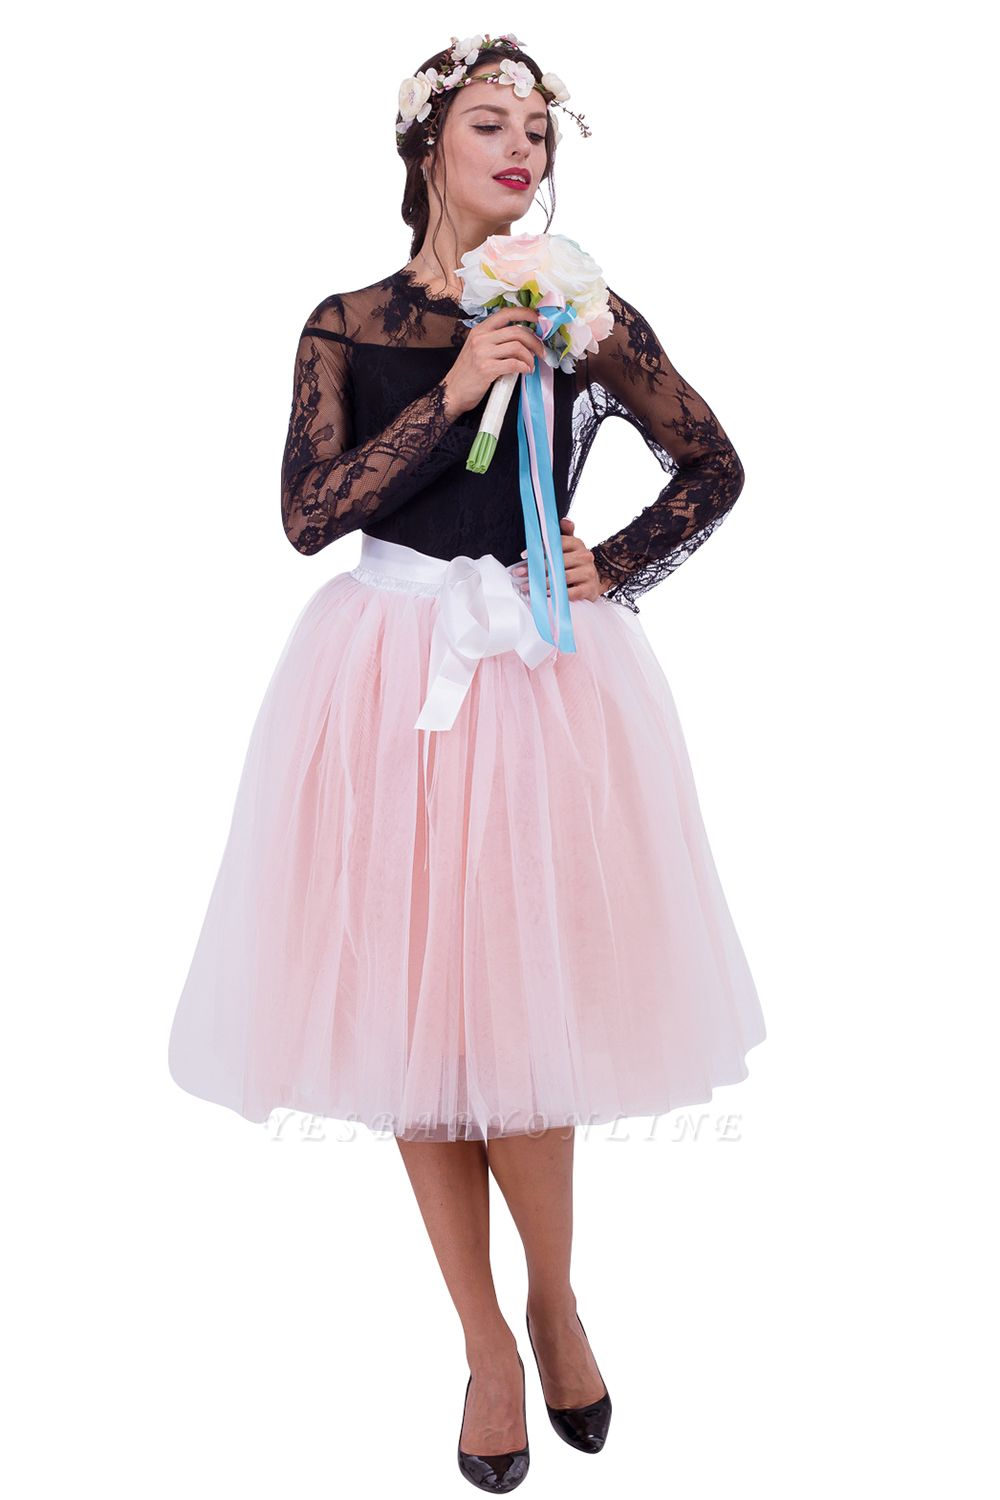 Glorious Tulle Knee-Length Ball-Gown Skirts | Elastic Bowknot Women's Skirts